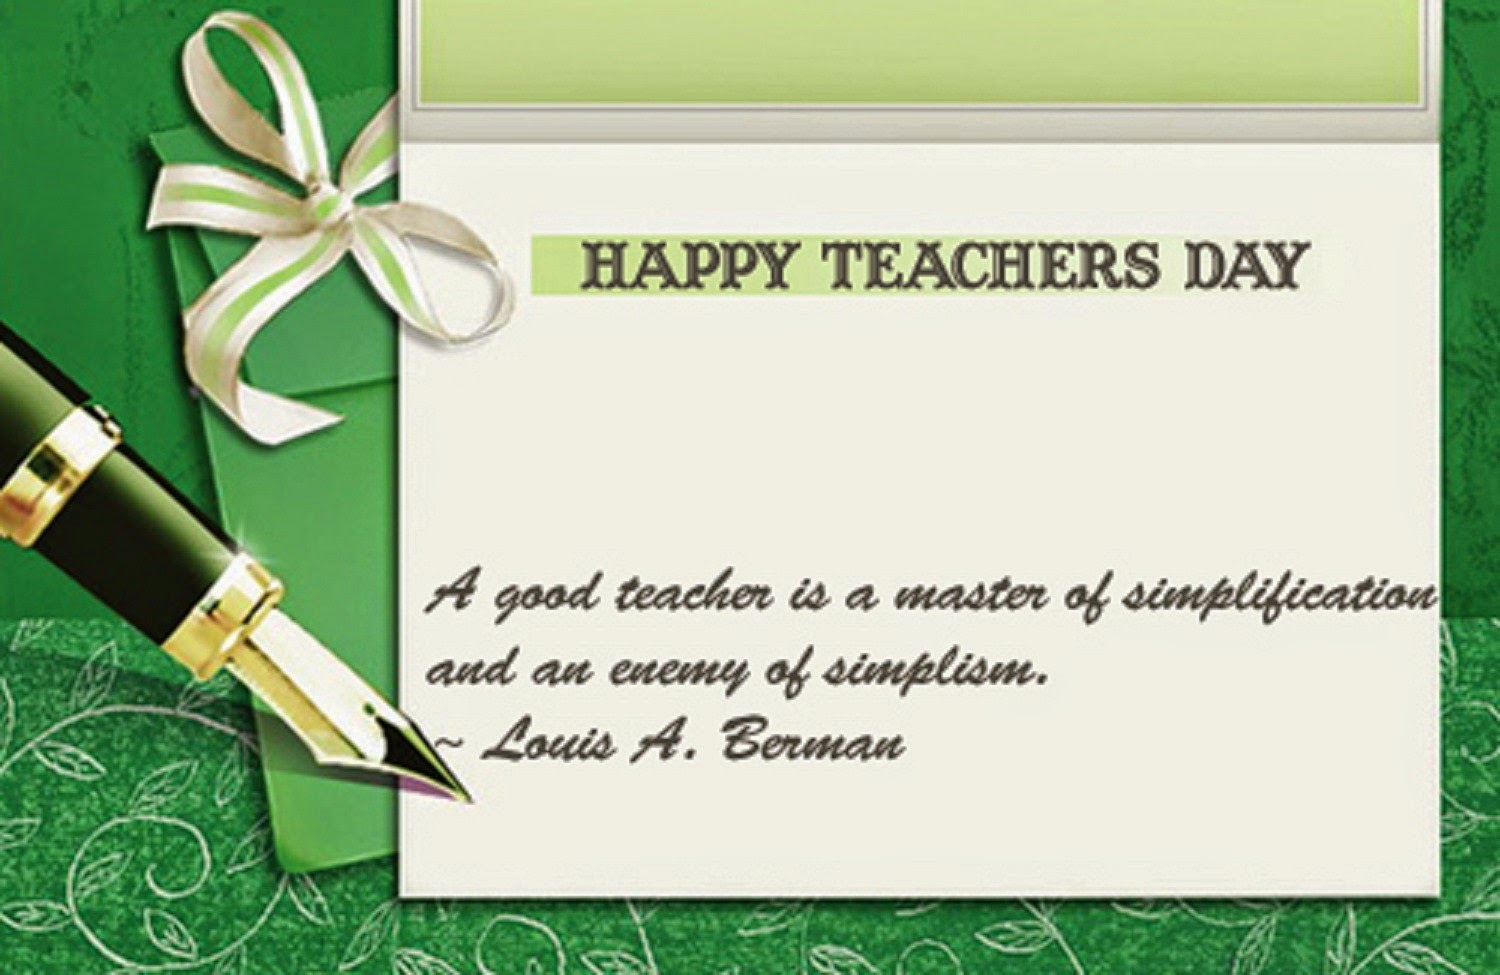 Happy teachers day wishes greetings and sms hamara hindustan happy teachers day wishes greetings and sms kristyandbryce Choice Image